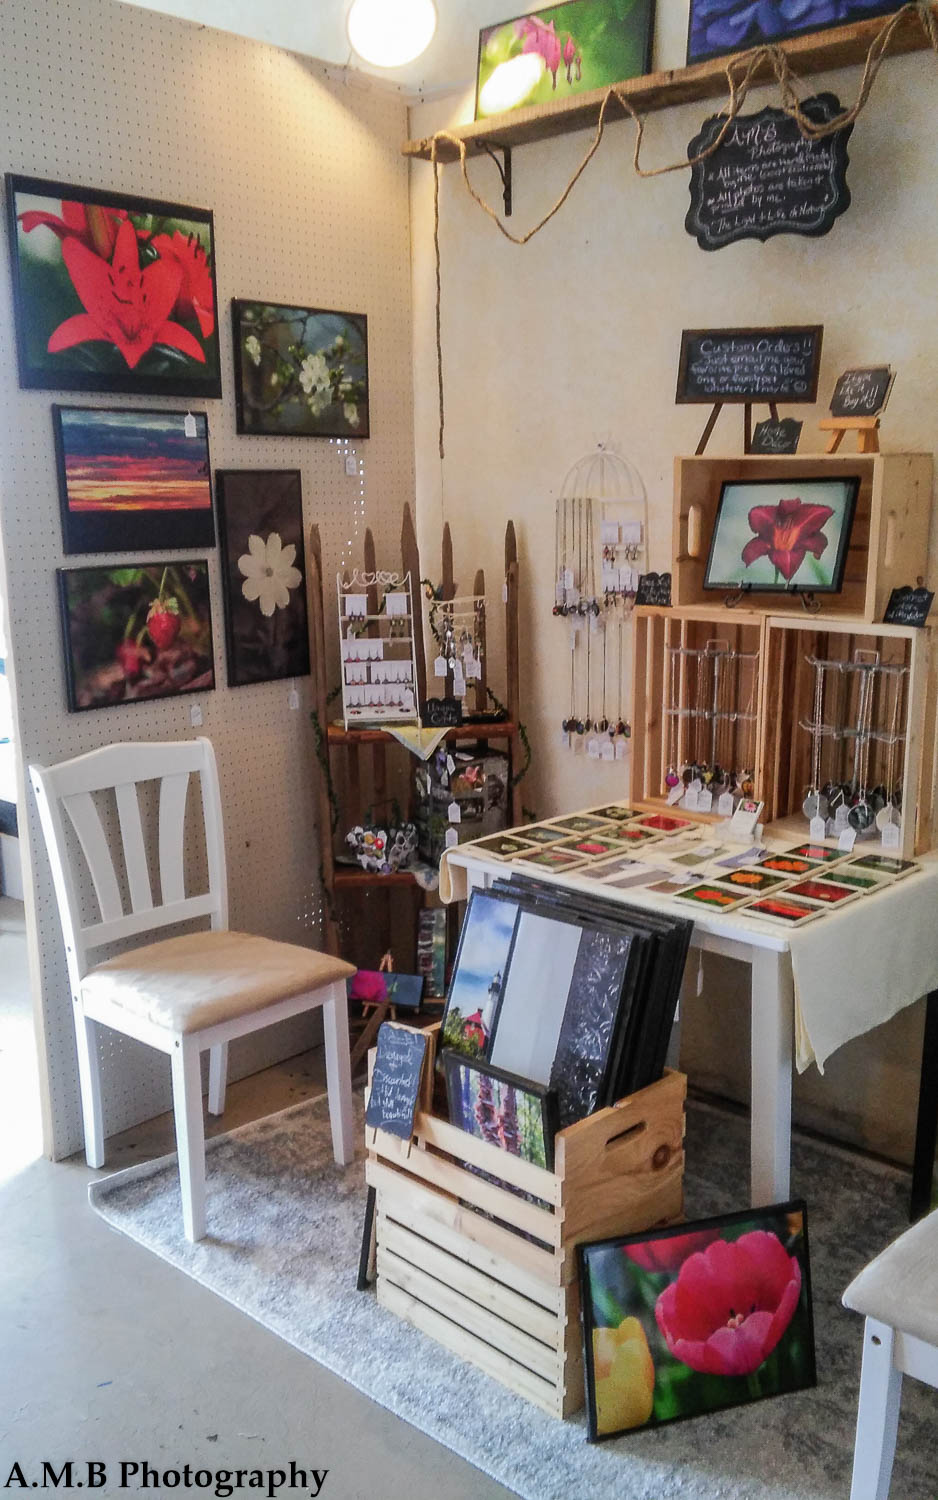 Kountry Nook - Large Booth II